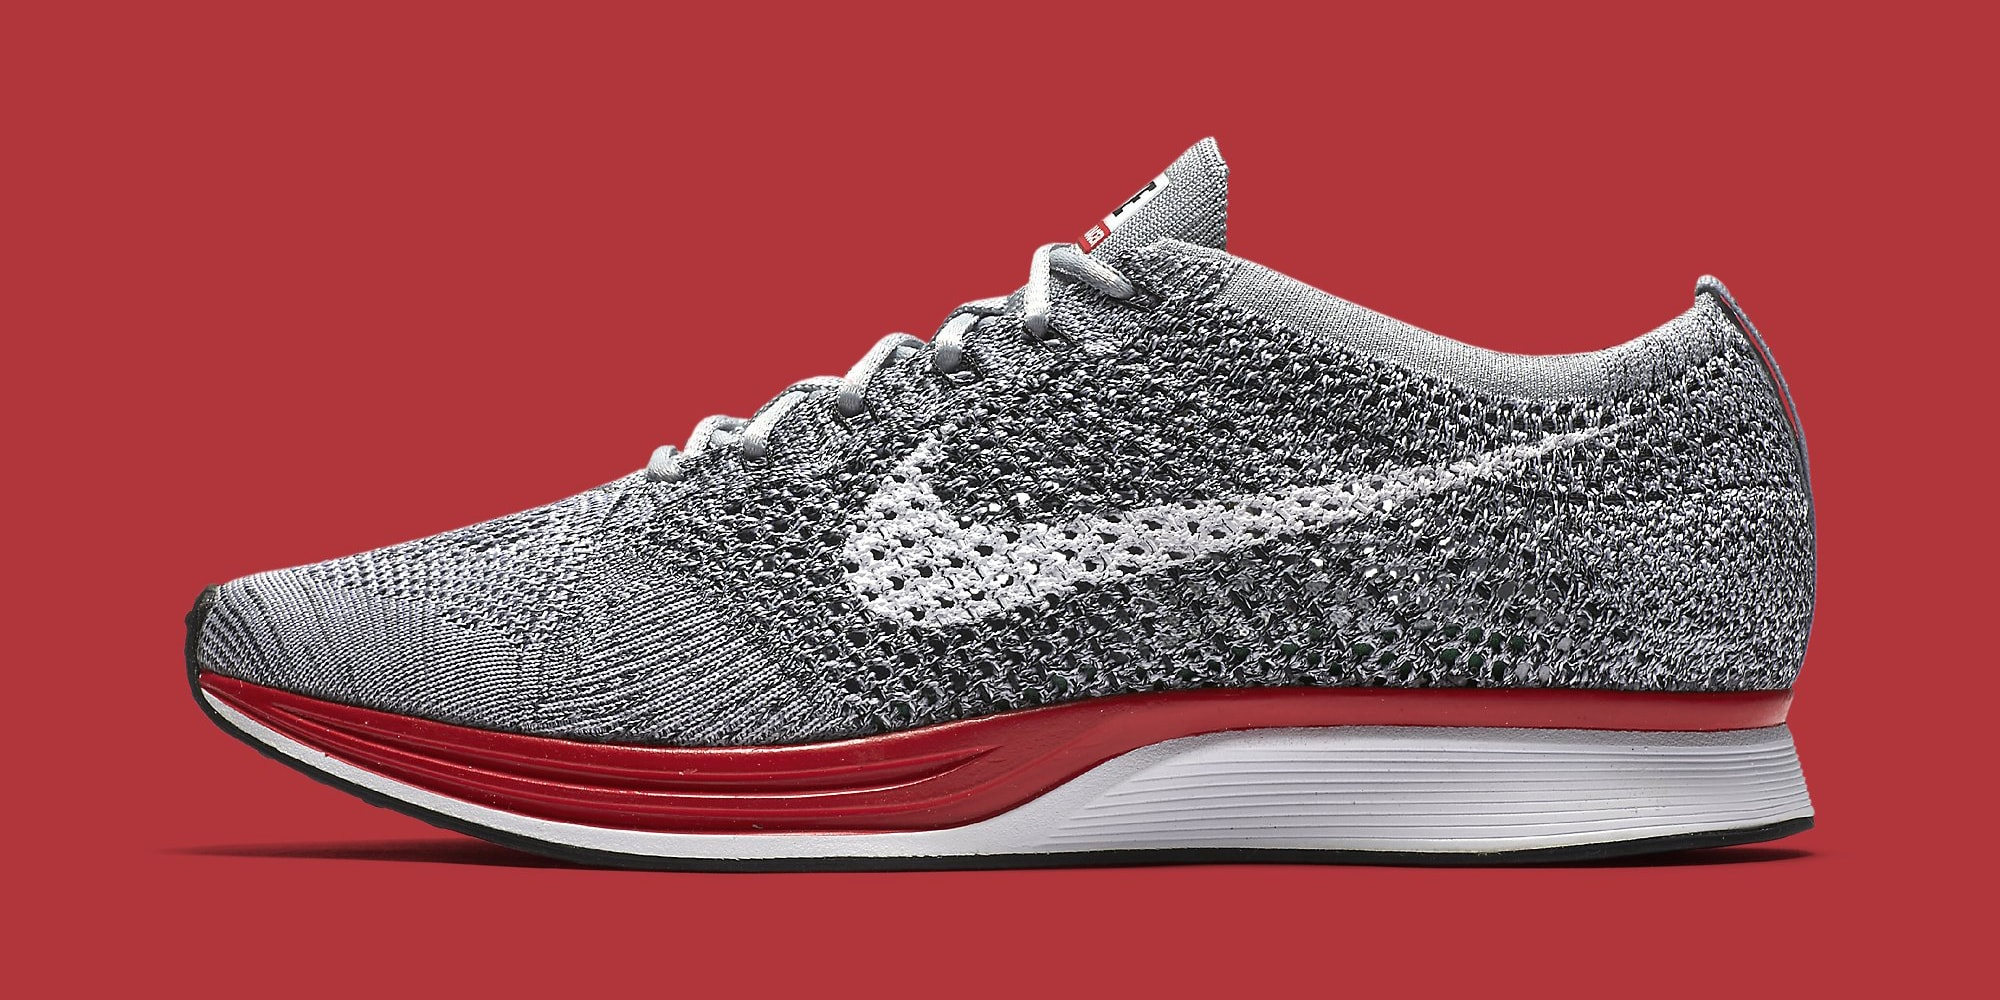 Nike Flyknit Racer Grey Red 526628-013 Profile